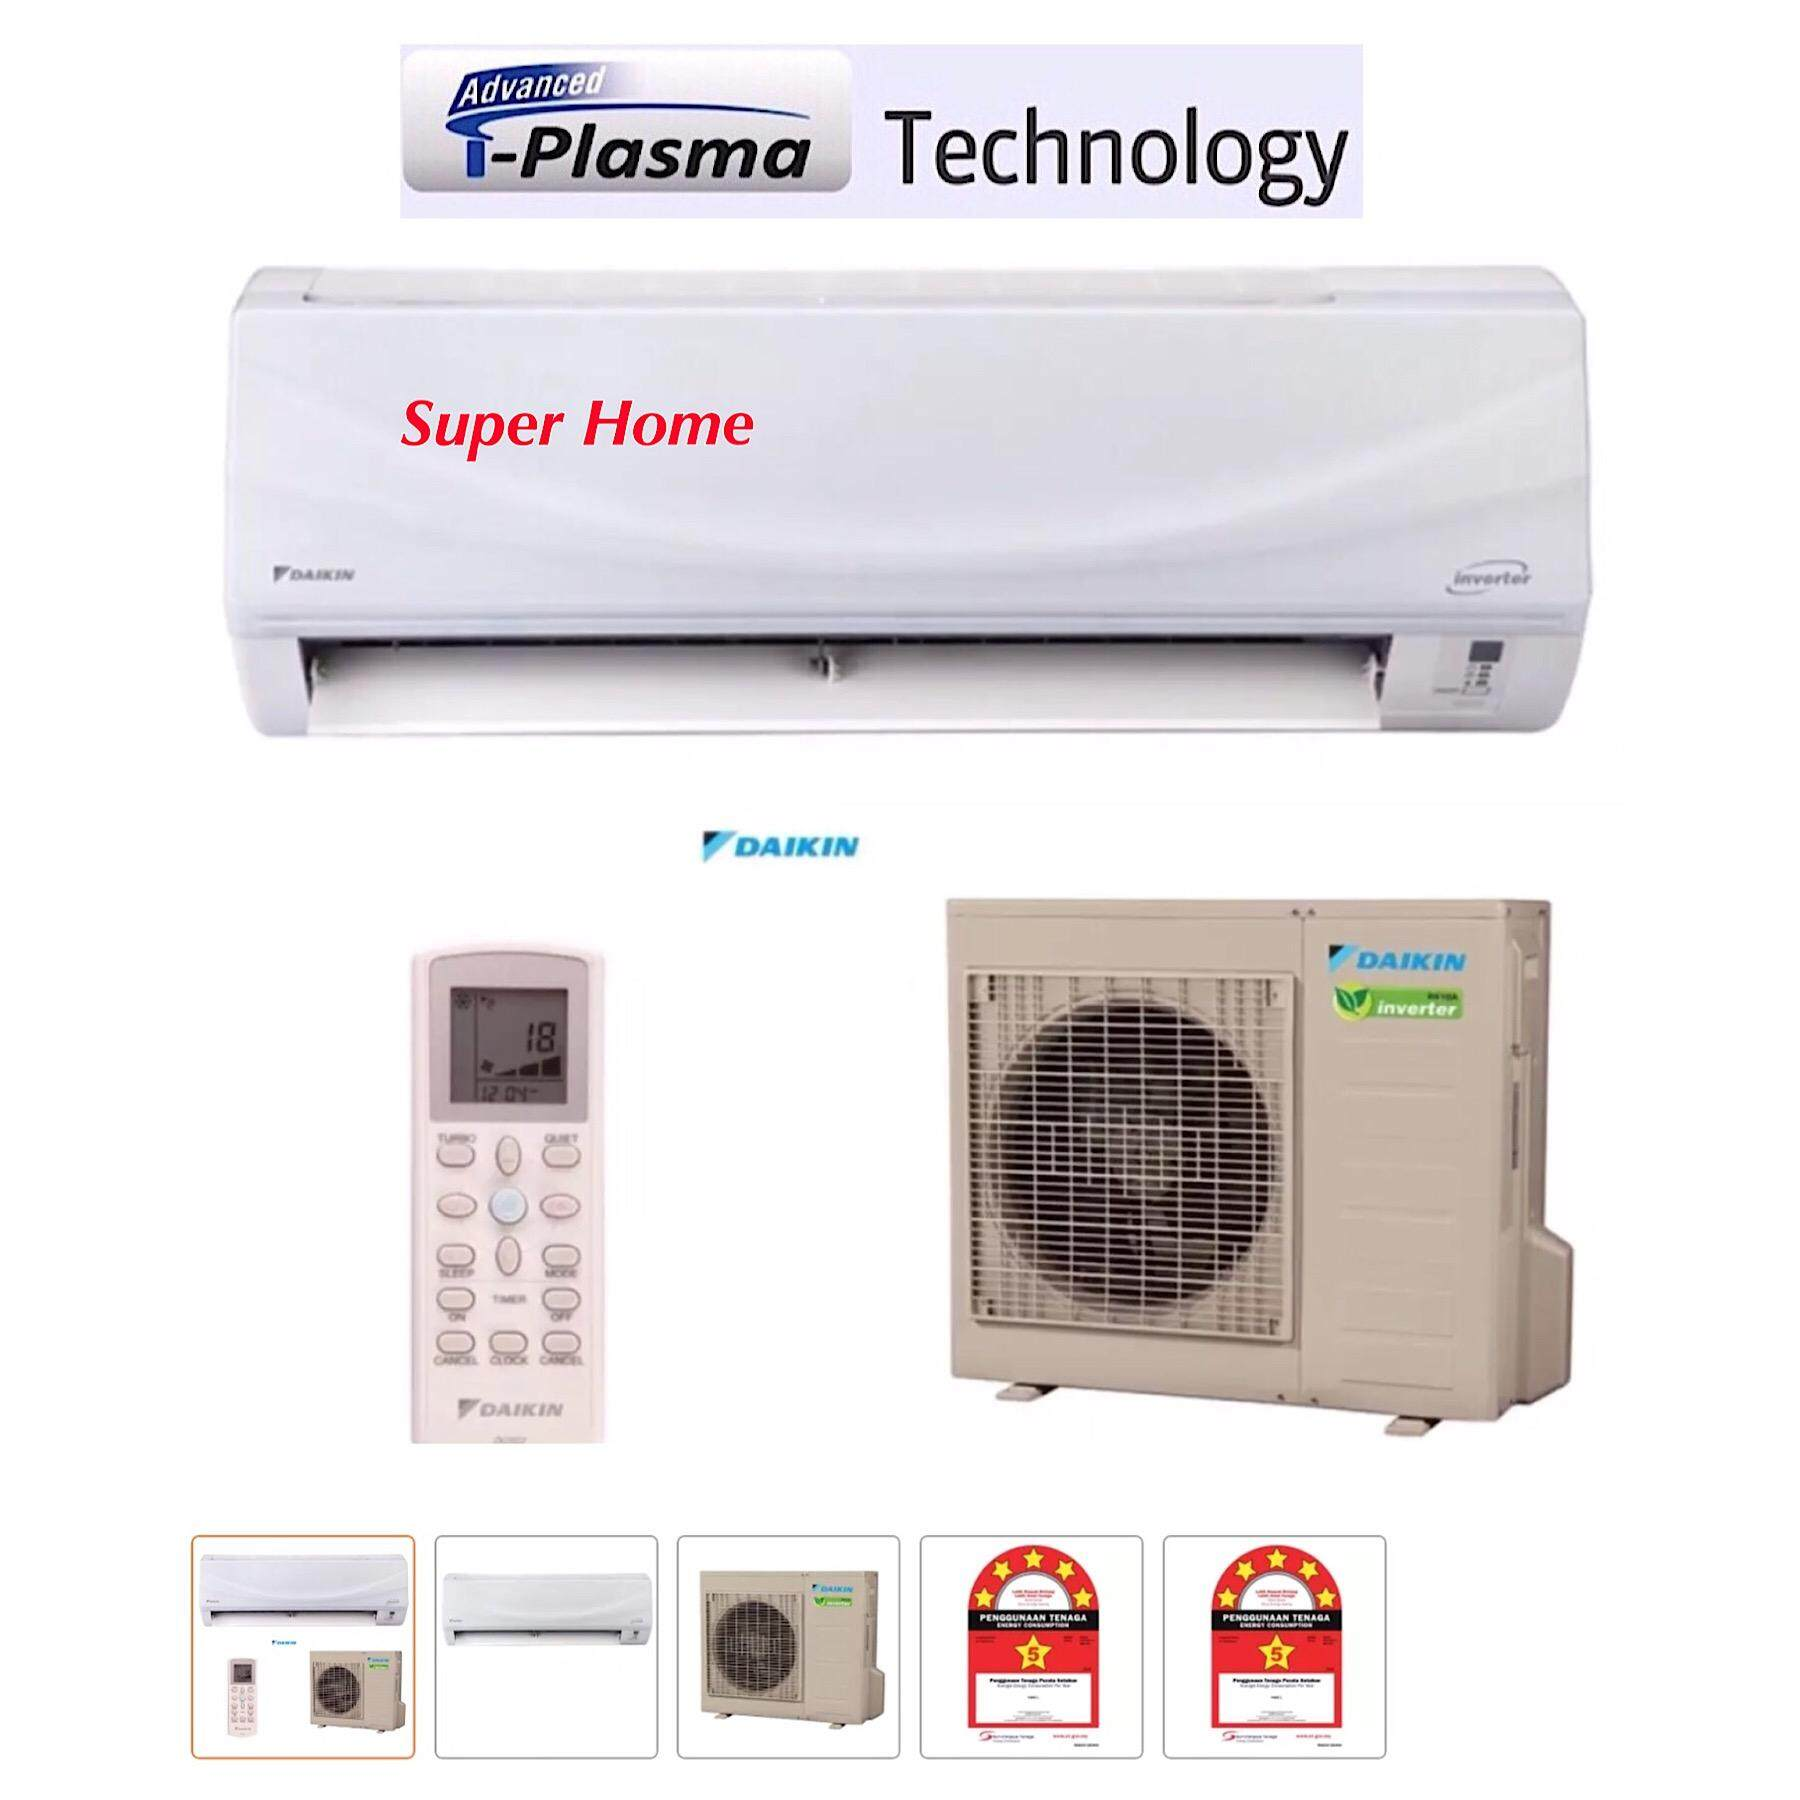 Daikin Cooling King 2hp Inverter with i Plasma Wall Mounted Air Conditioner FTK20M / RK20F R410A (DC Inverter)